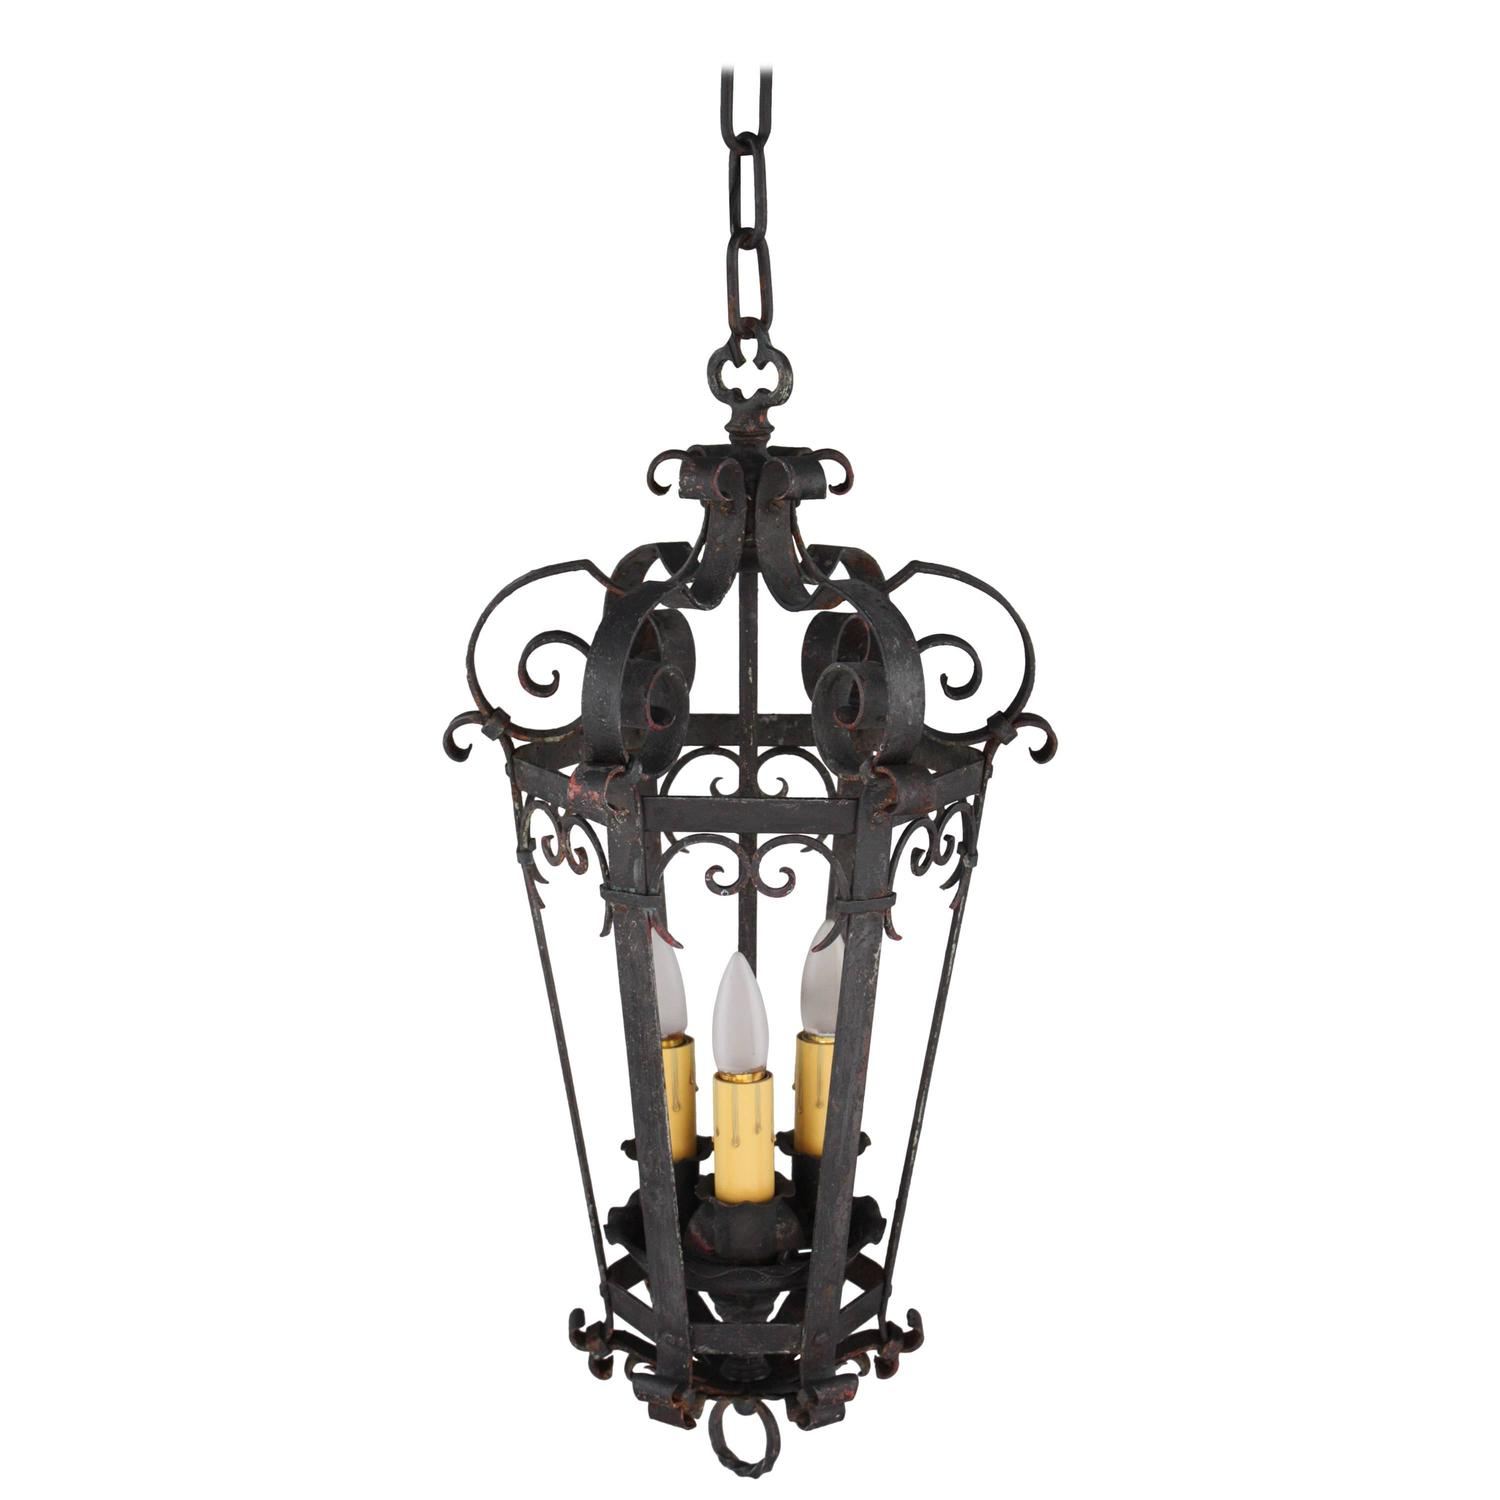 1920s wrought iron pendant with three lights for sale at 1stdibs. Black Bedroom Furniture Sets. Home Design Ideas